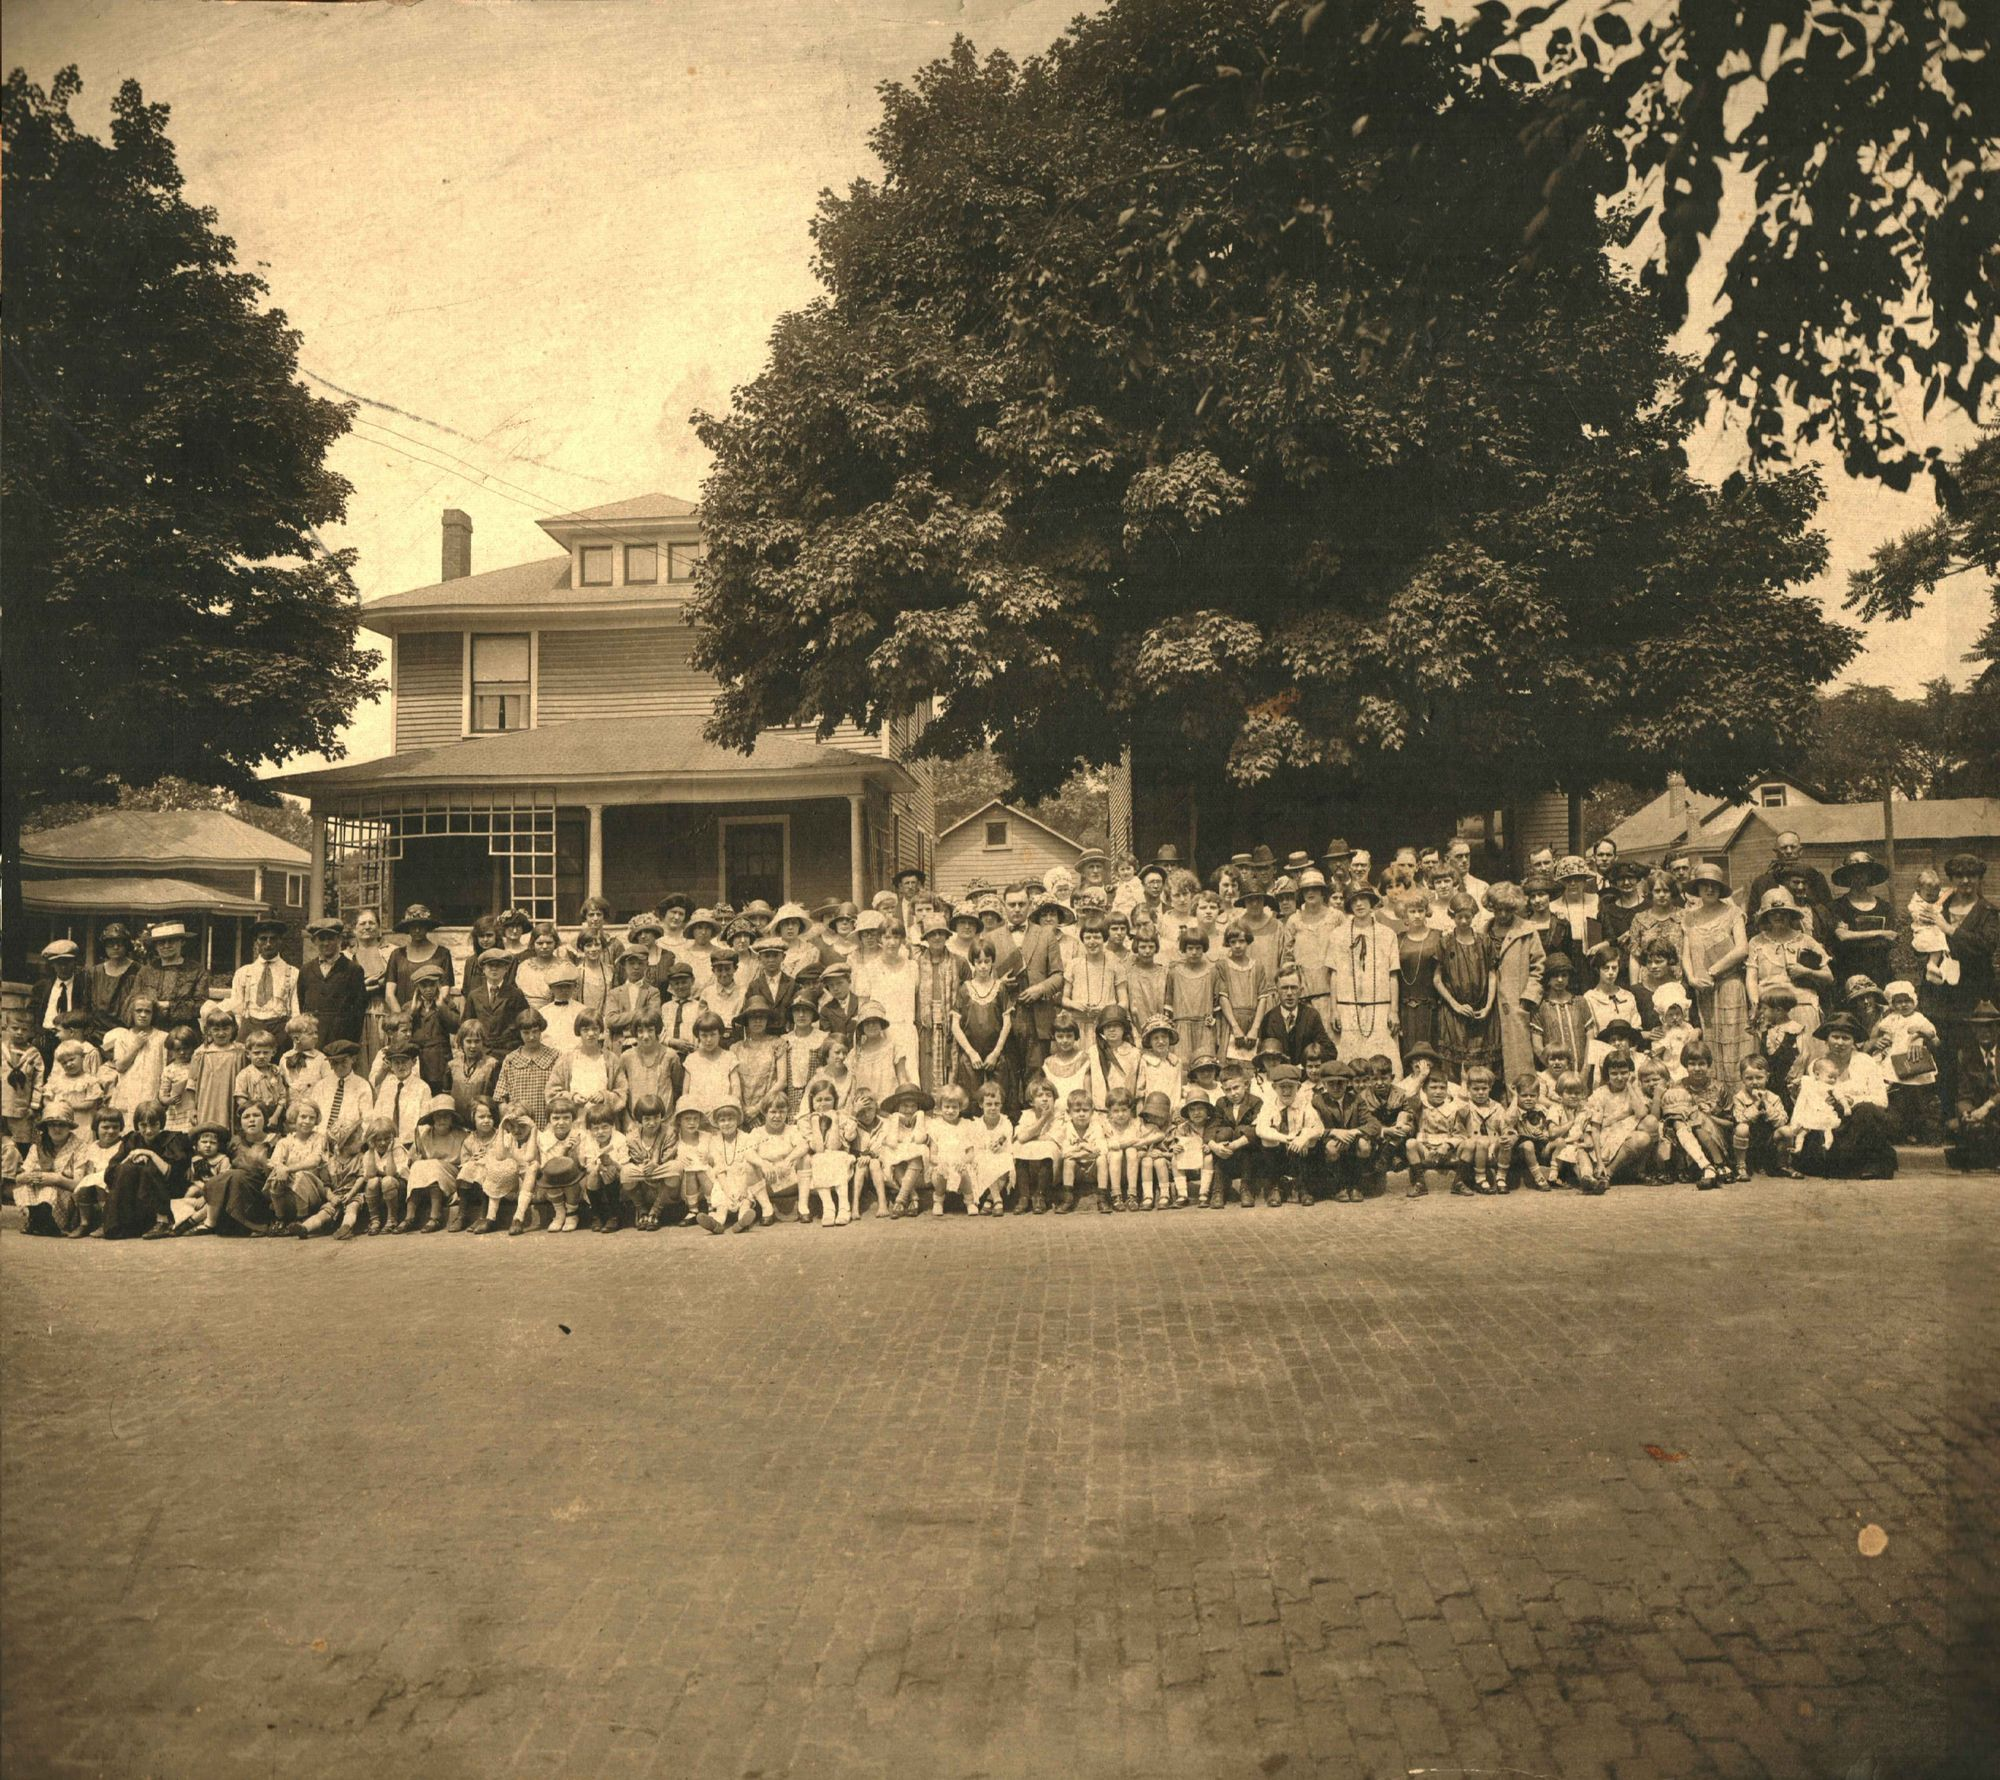 Congregation in the summer of 1924, on Main Street opposite of the church.